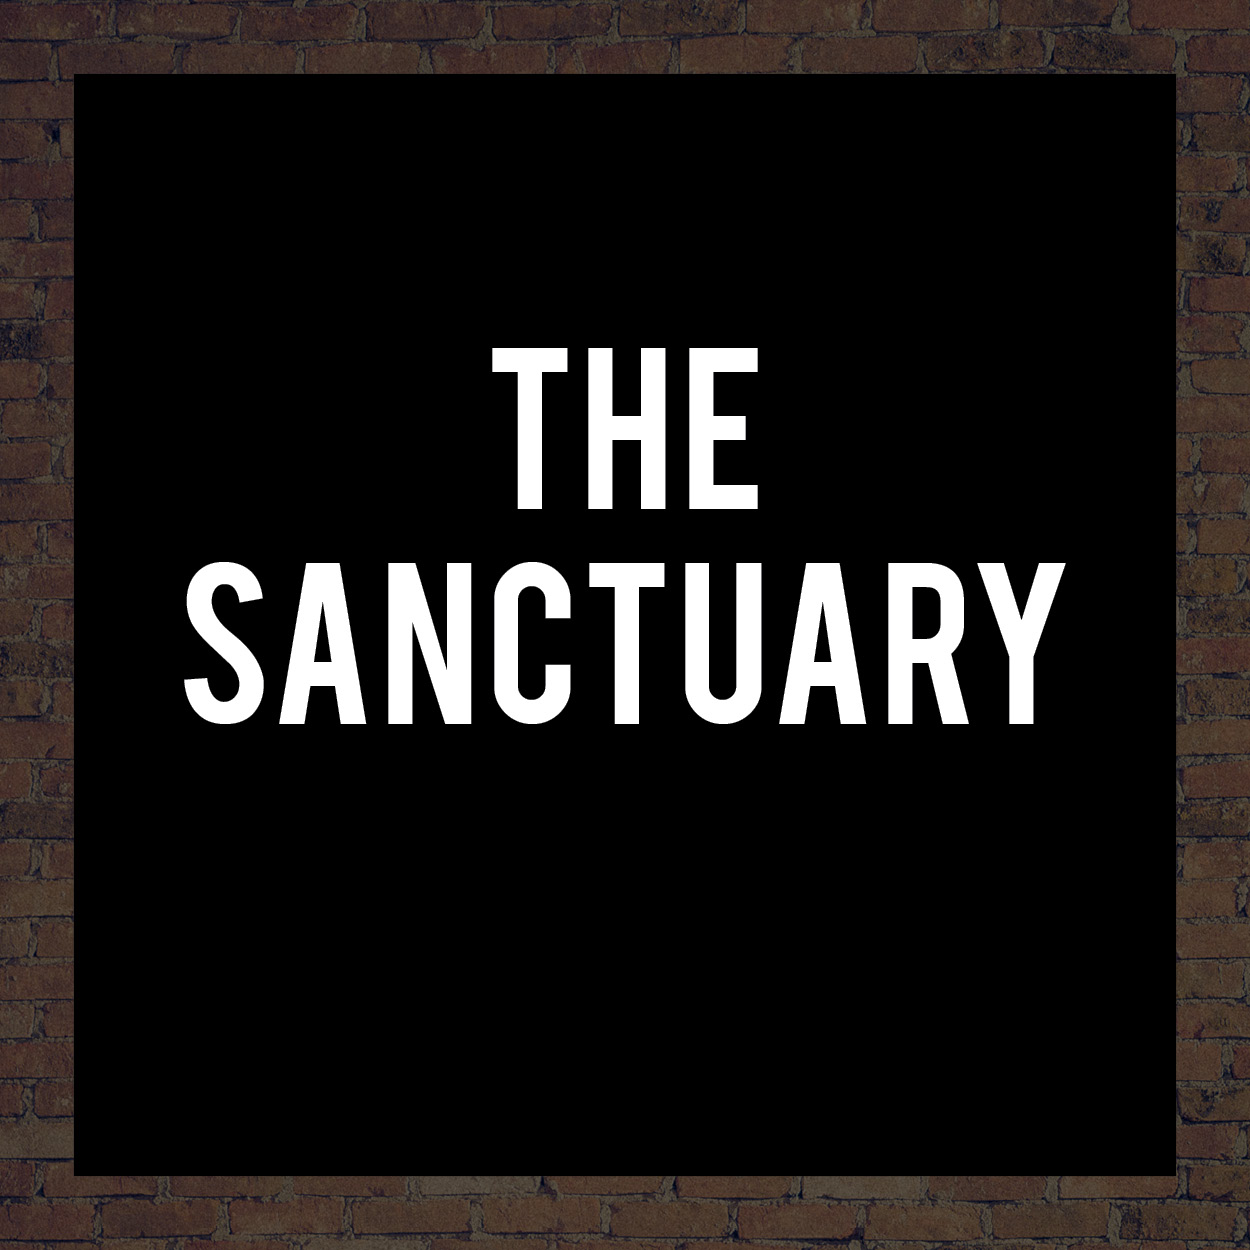 Thd sanctuary text